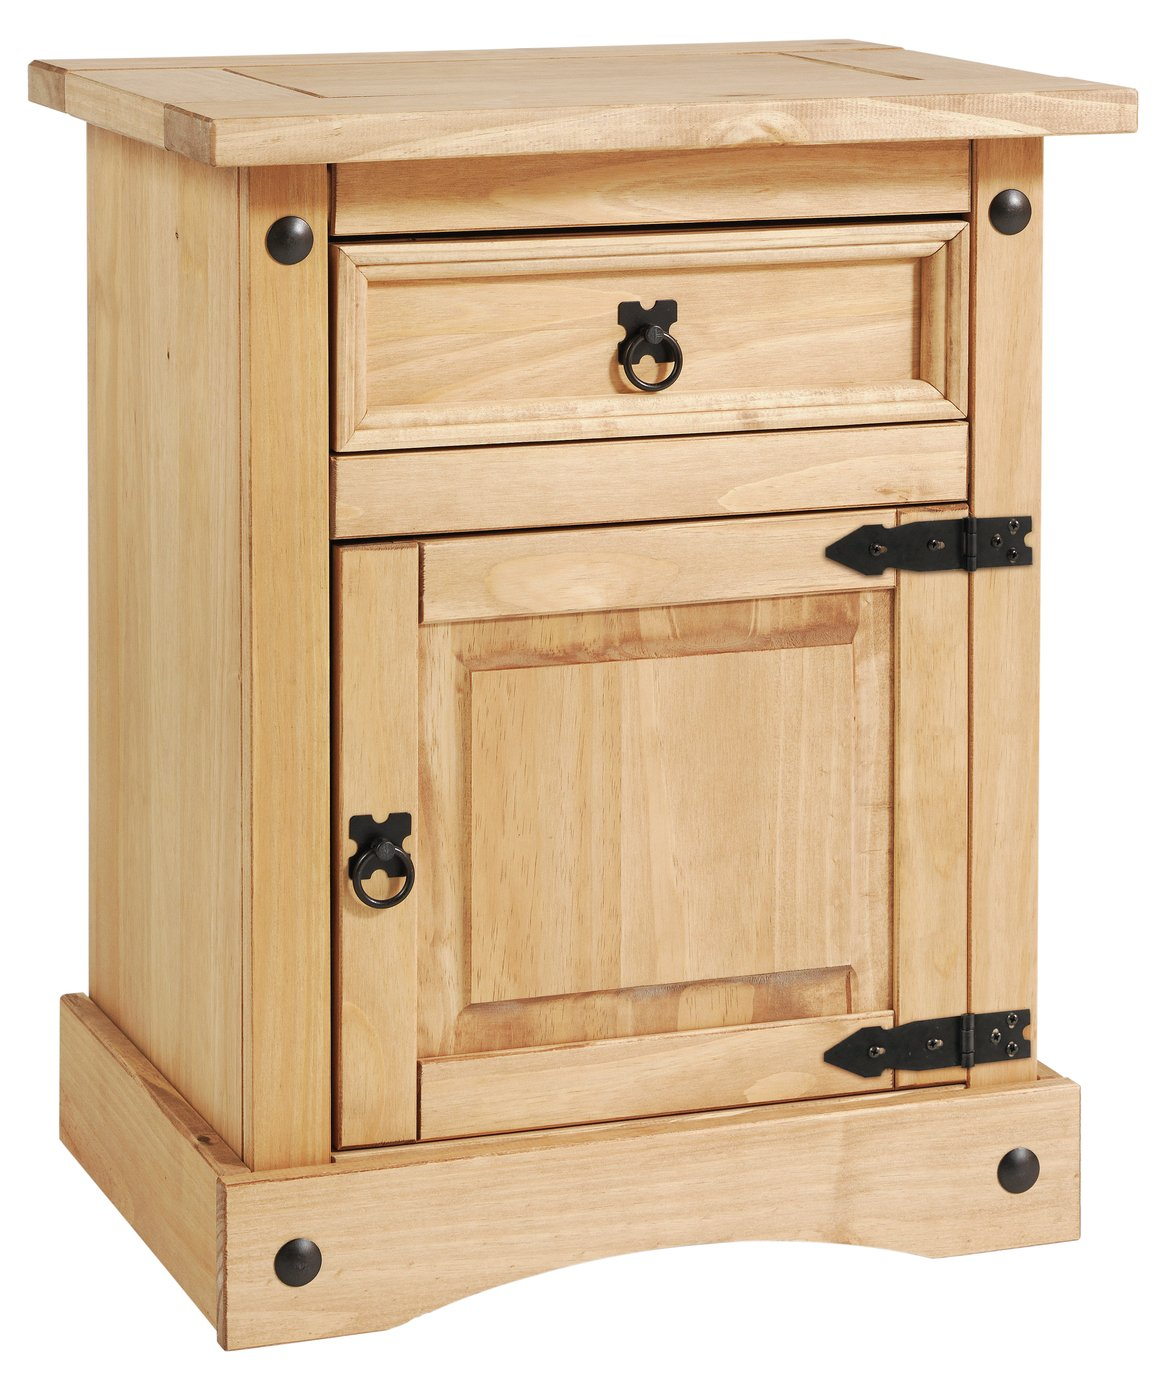 Argos Home Puerto Rico Bedside Table - Light Pine